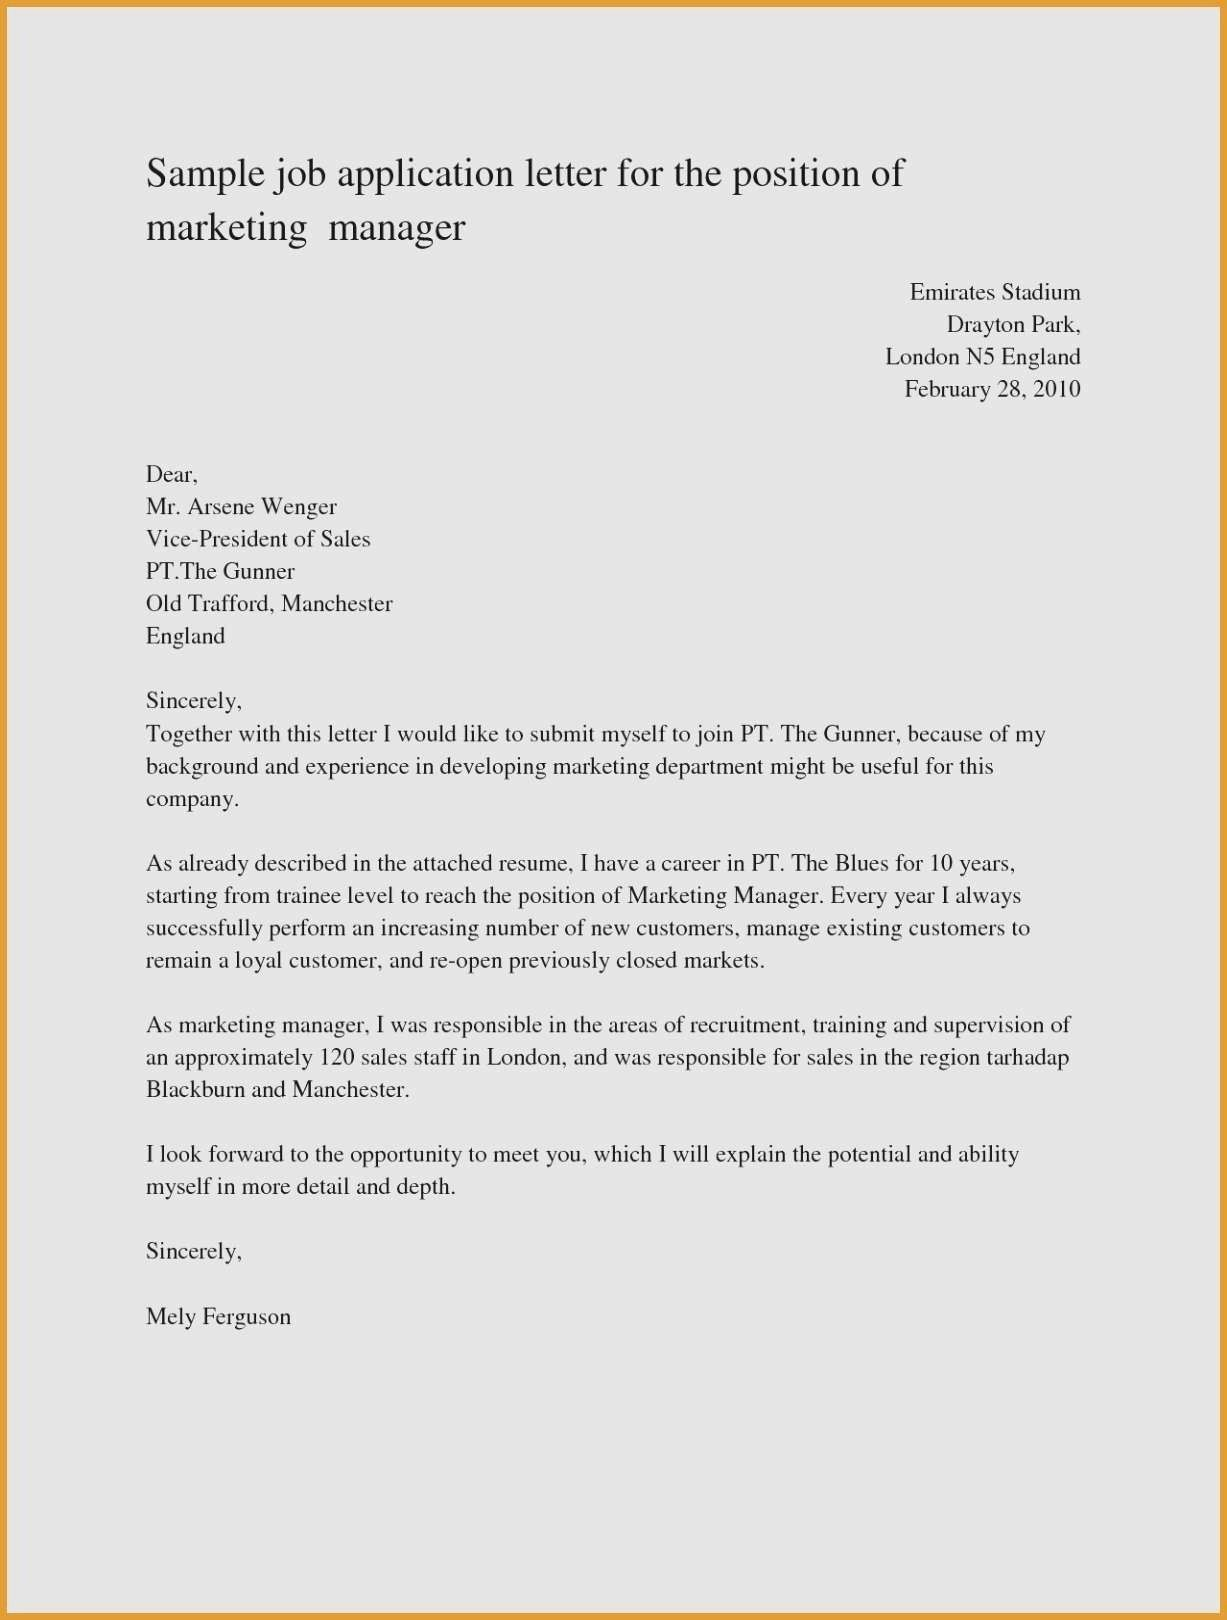 Pin by Gprime Images on Letterhead Formats | Job application ...